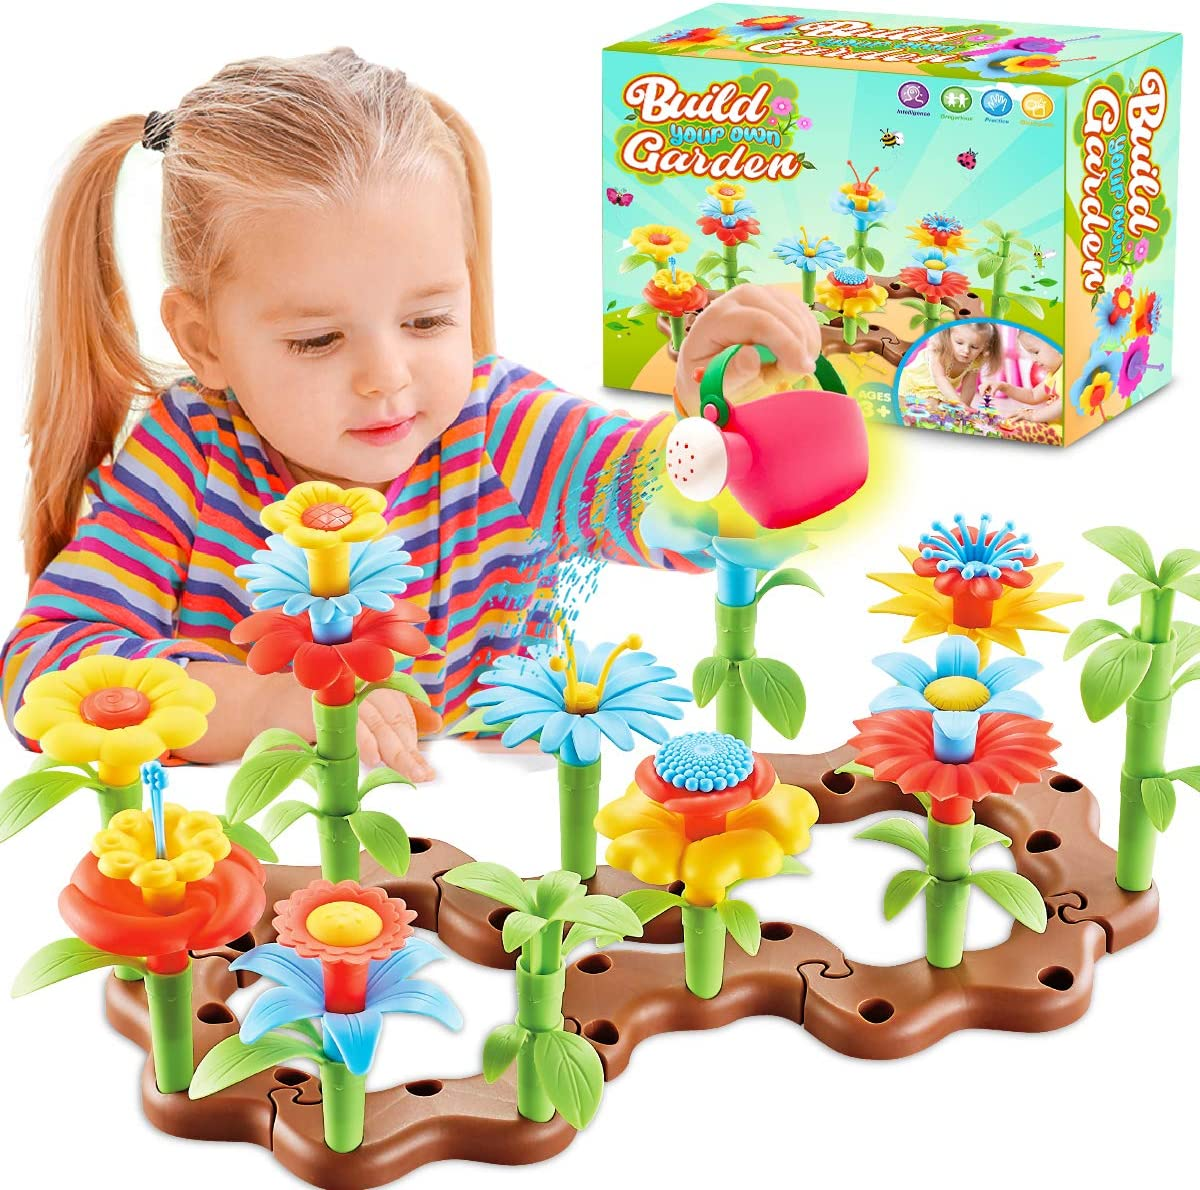 FunzBo Flower Garden Building Toys for Girls - STEM Toy Gardening Pretend Gift for Kids - Stacking Game for Toddlers playset - Educational Activity for Preschool Children Age 3 4 5 6 7 Year (Brown)